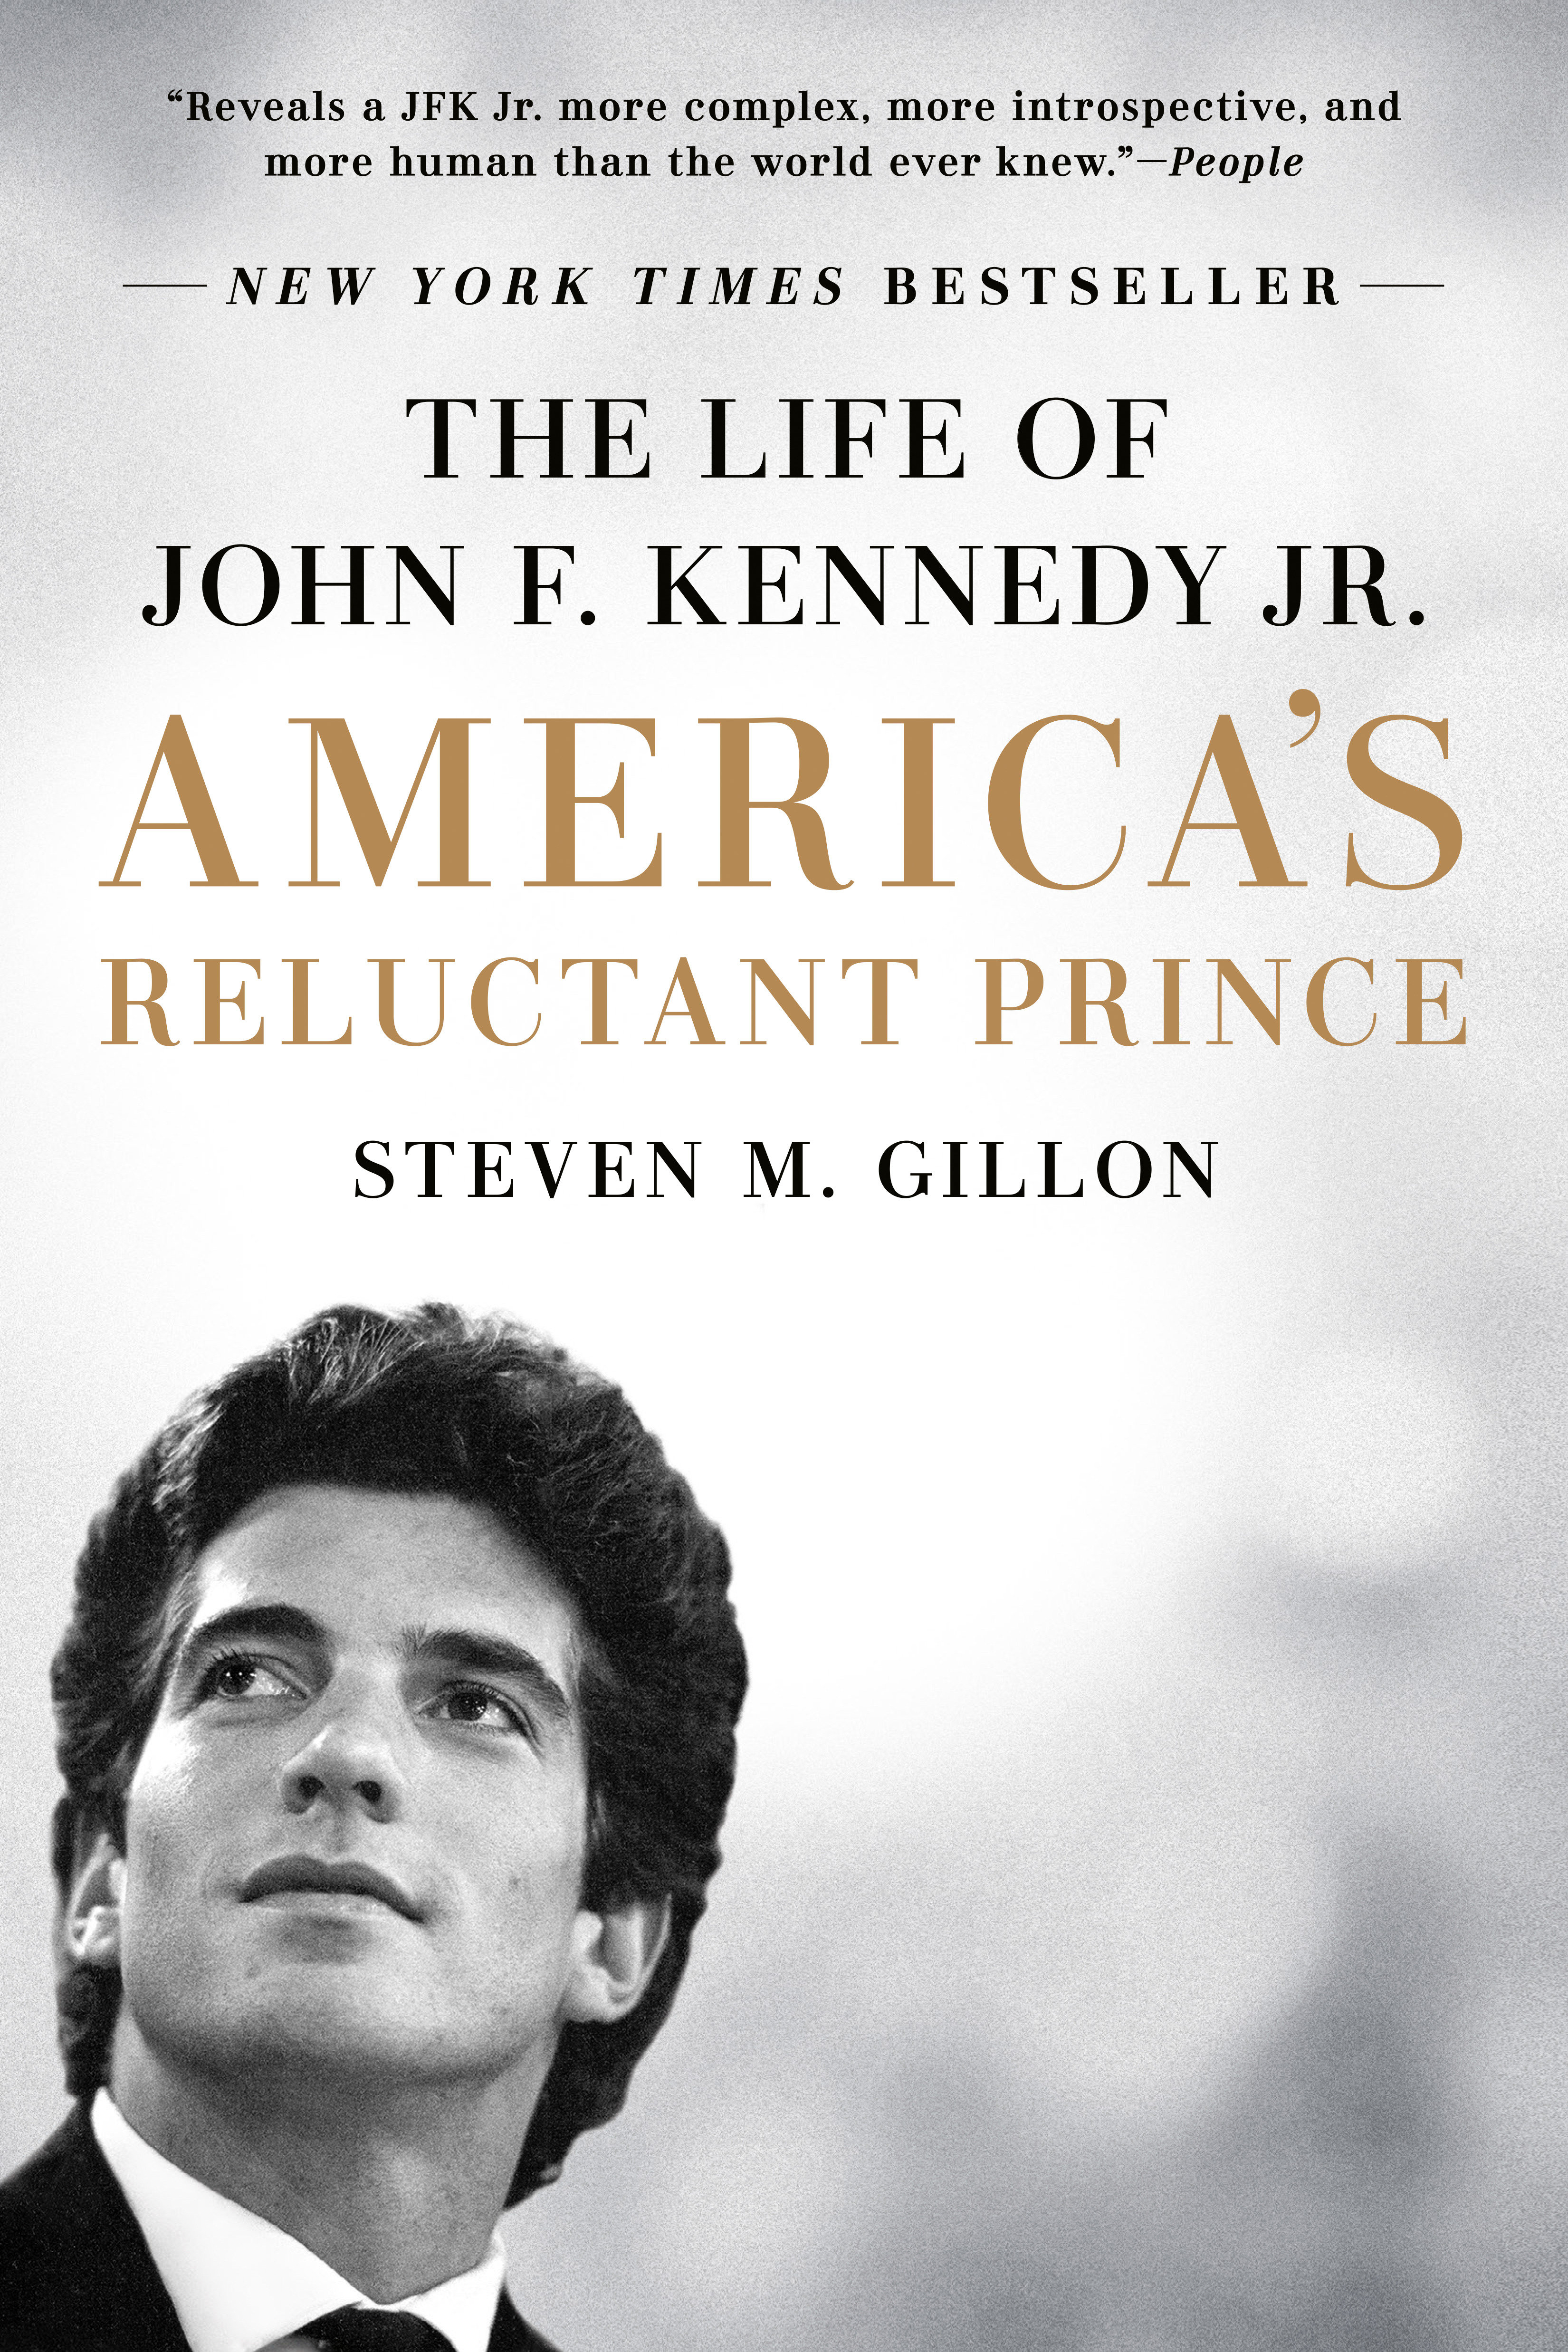 America's Reluctant Prince The Life of John F. Kennedy Jr.